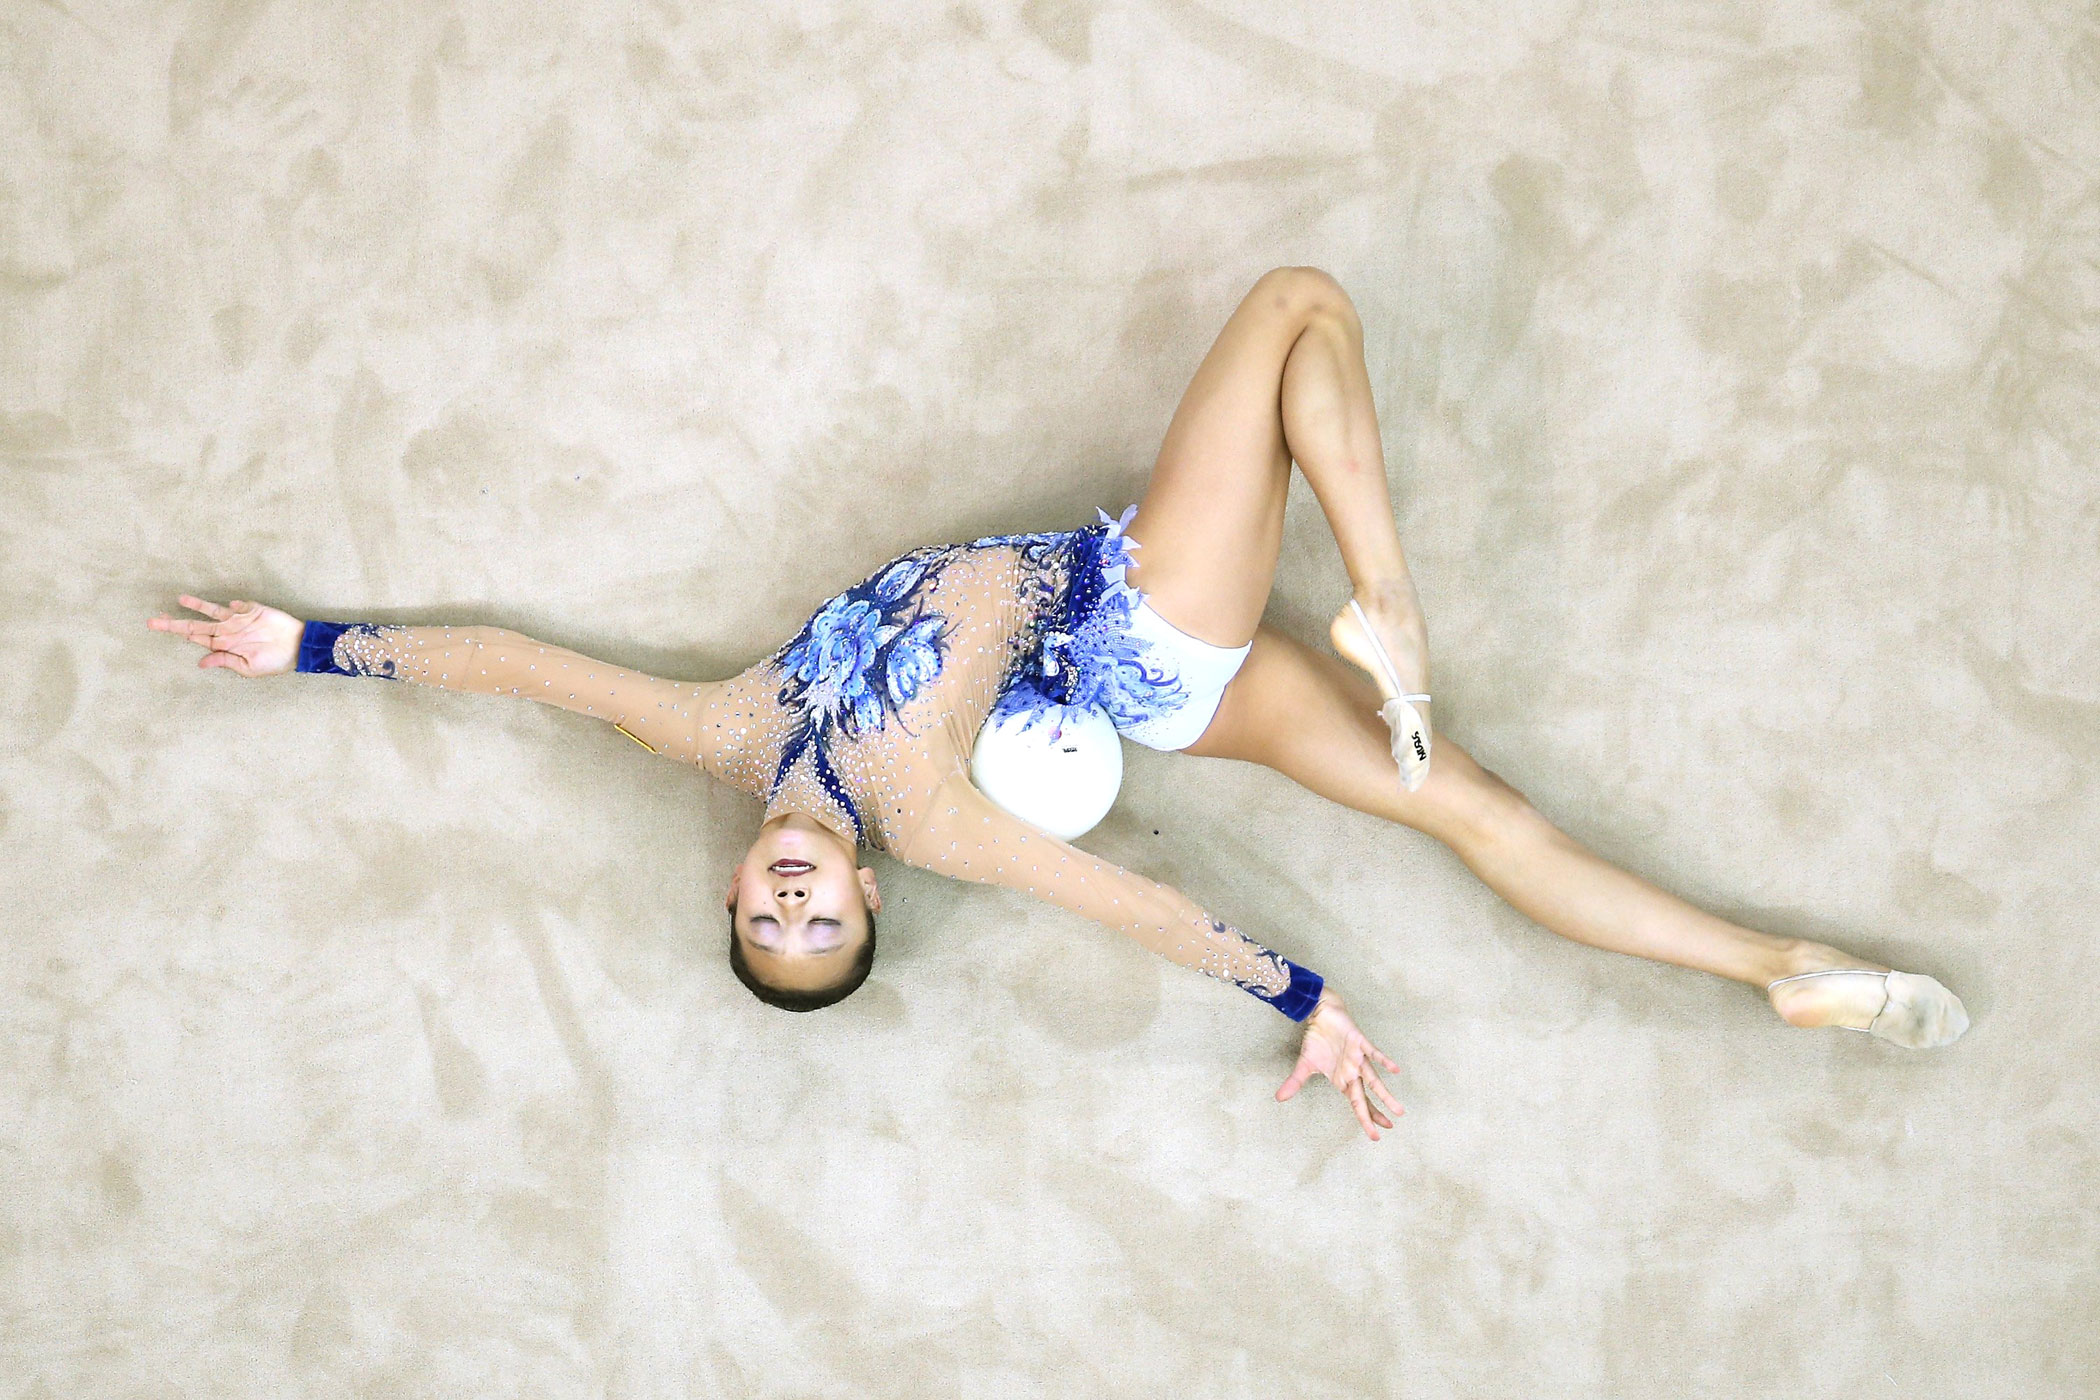 Laura Zeng of the United States competes in Rhythmic Gymnastics Individual All-Around Qualification on day ten of the Nanjing 2014 Summer Youth Olympic Games at Nanjing OSC Gymnasium on Aug. 26, 2014 in Nanjing.